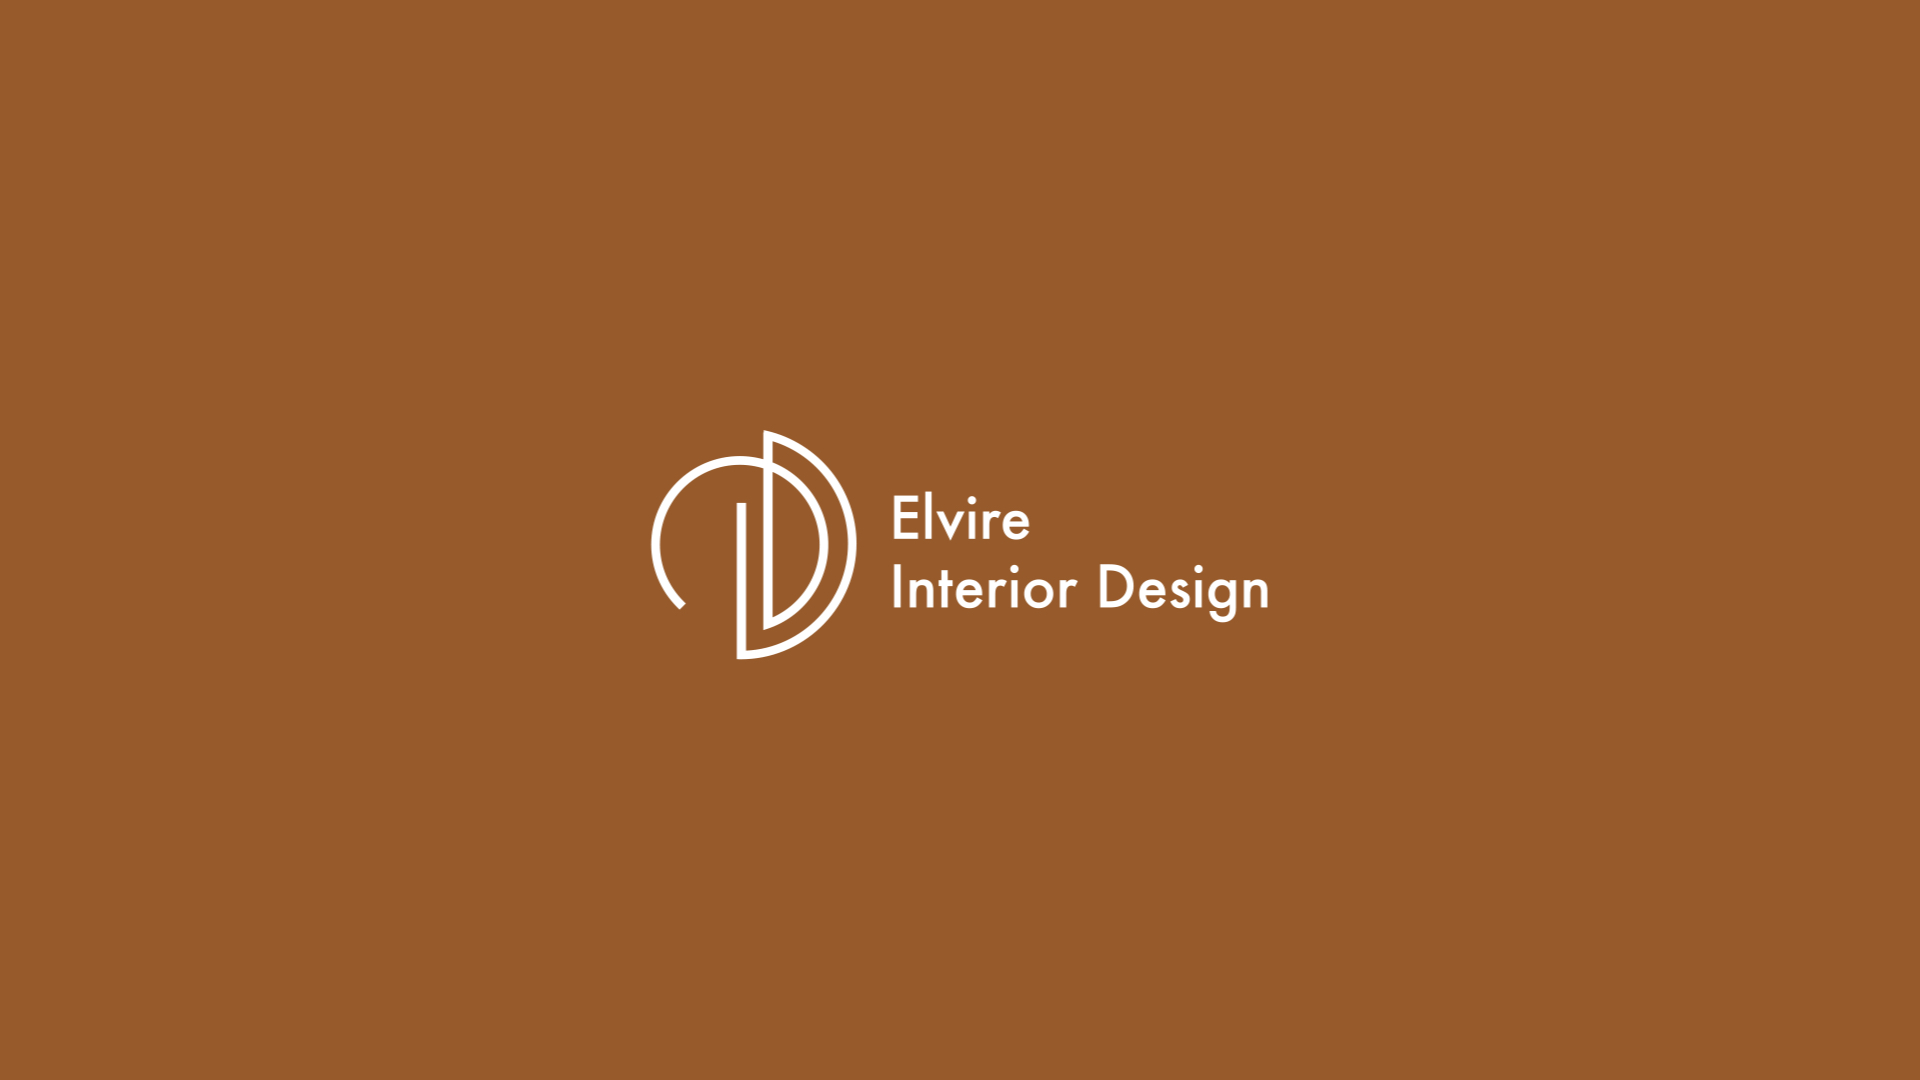 Elvire Interior Design